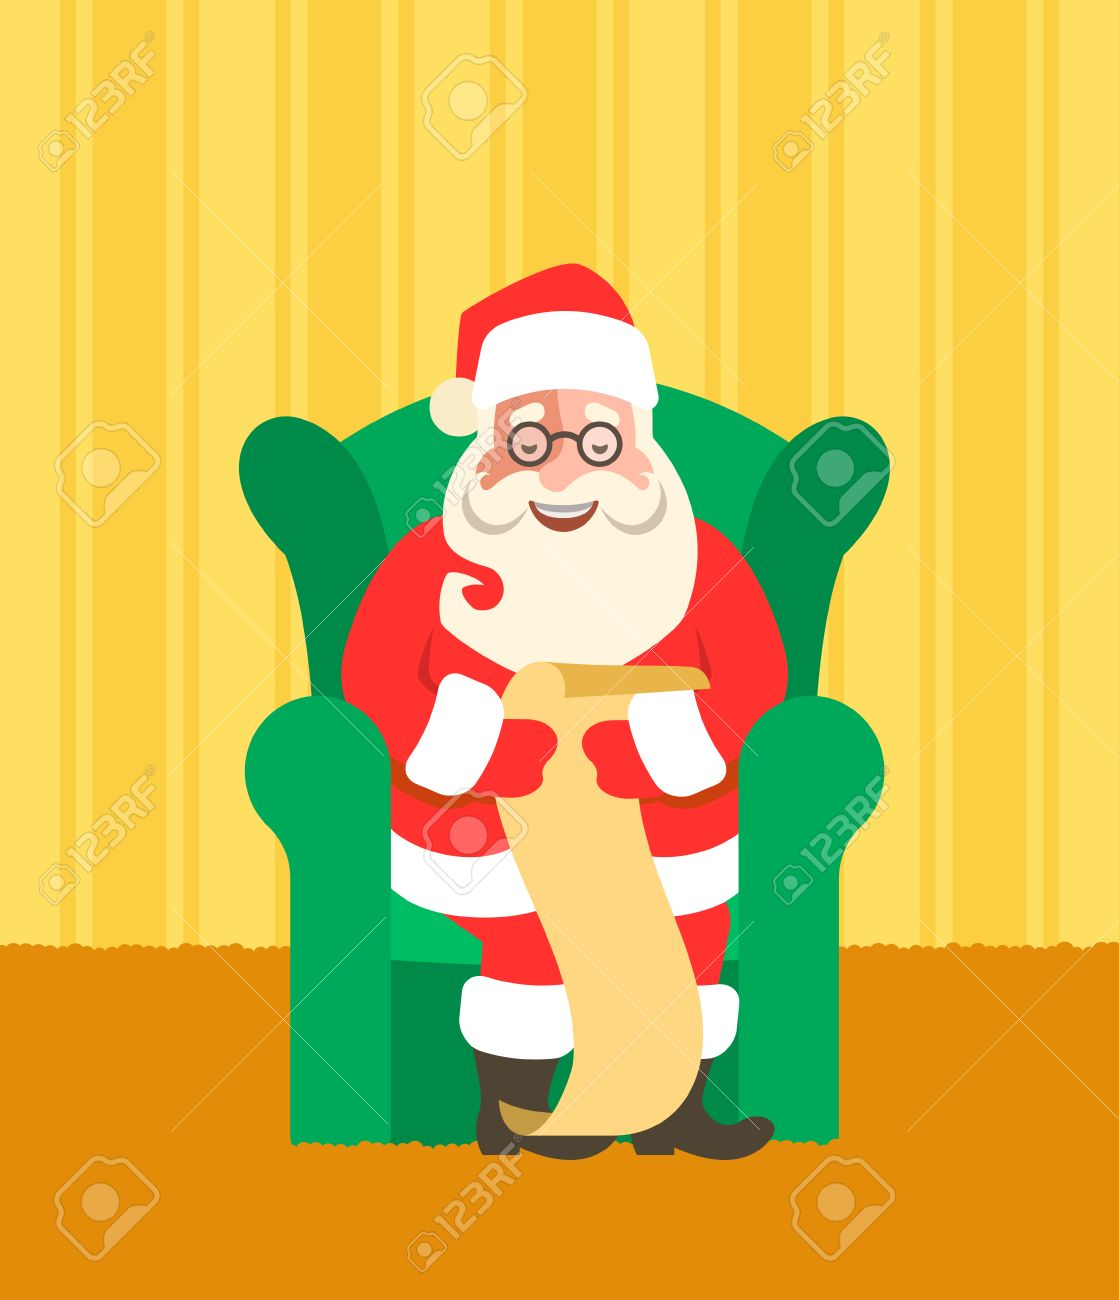 santa claus sits in a chair and reads naughty or nice kids list